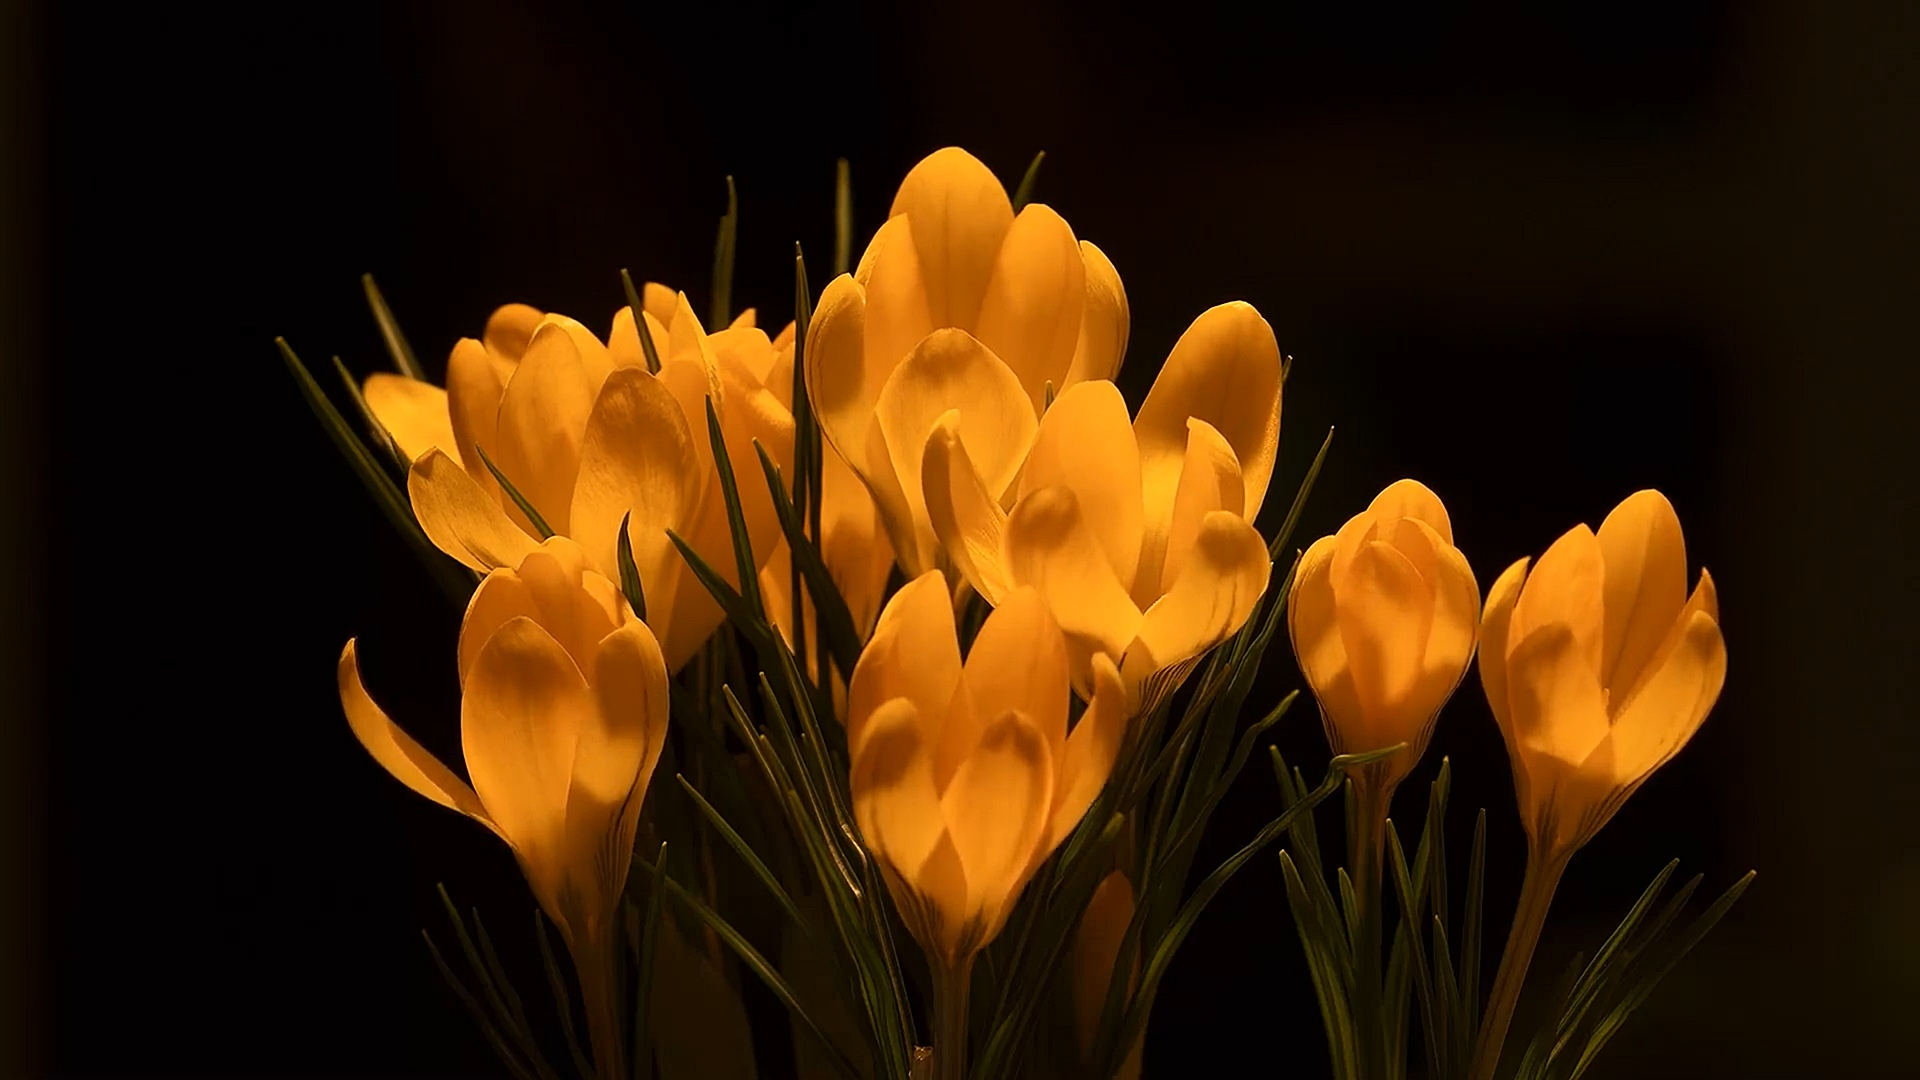 GOLDEN CROCUS ( DeskScapes )